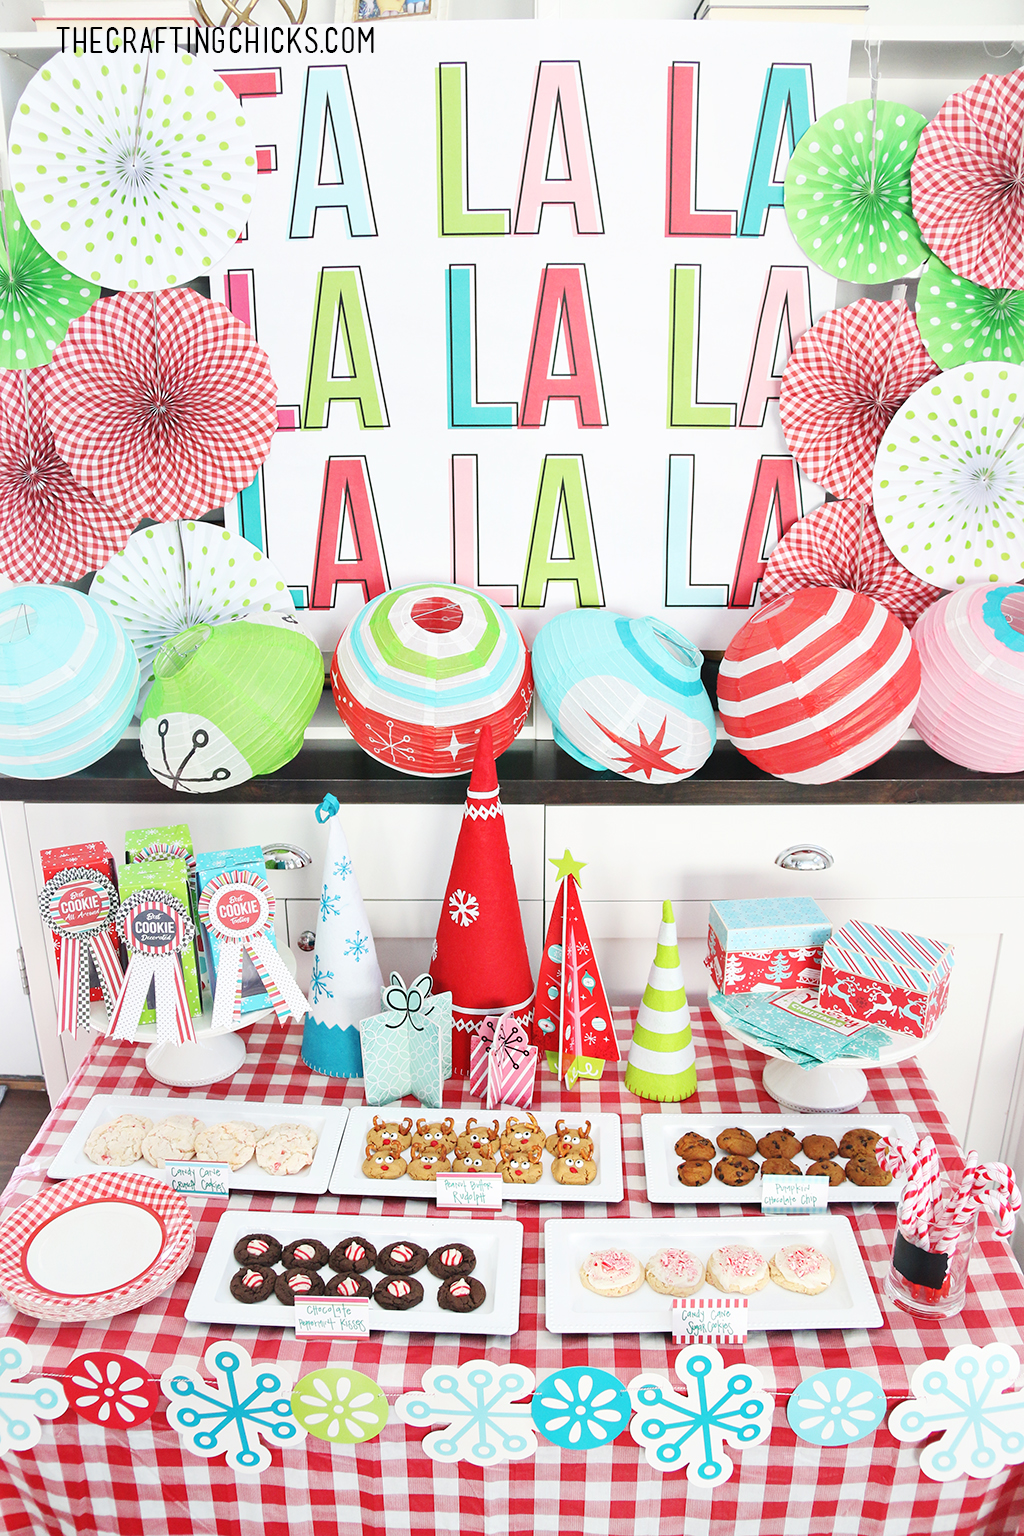 Our Cookie Exchange Party Backdrop is the perfect addition to any holiday party, but goes beautifully with the Tween Cookie Exchange we threw.